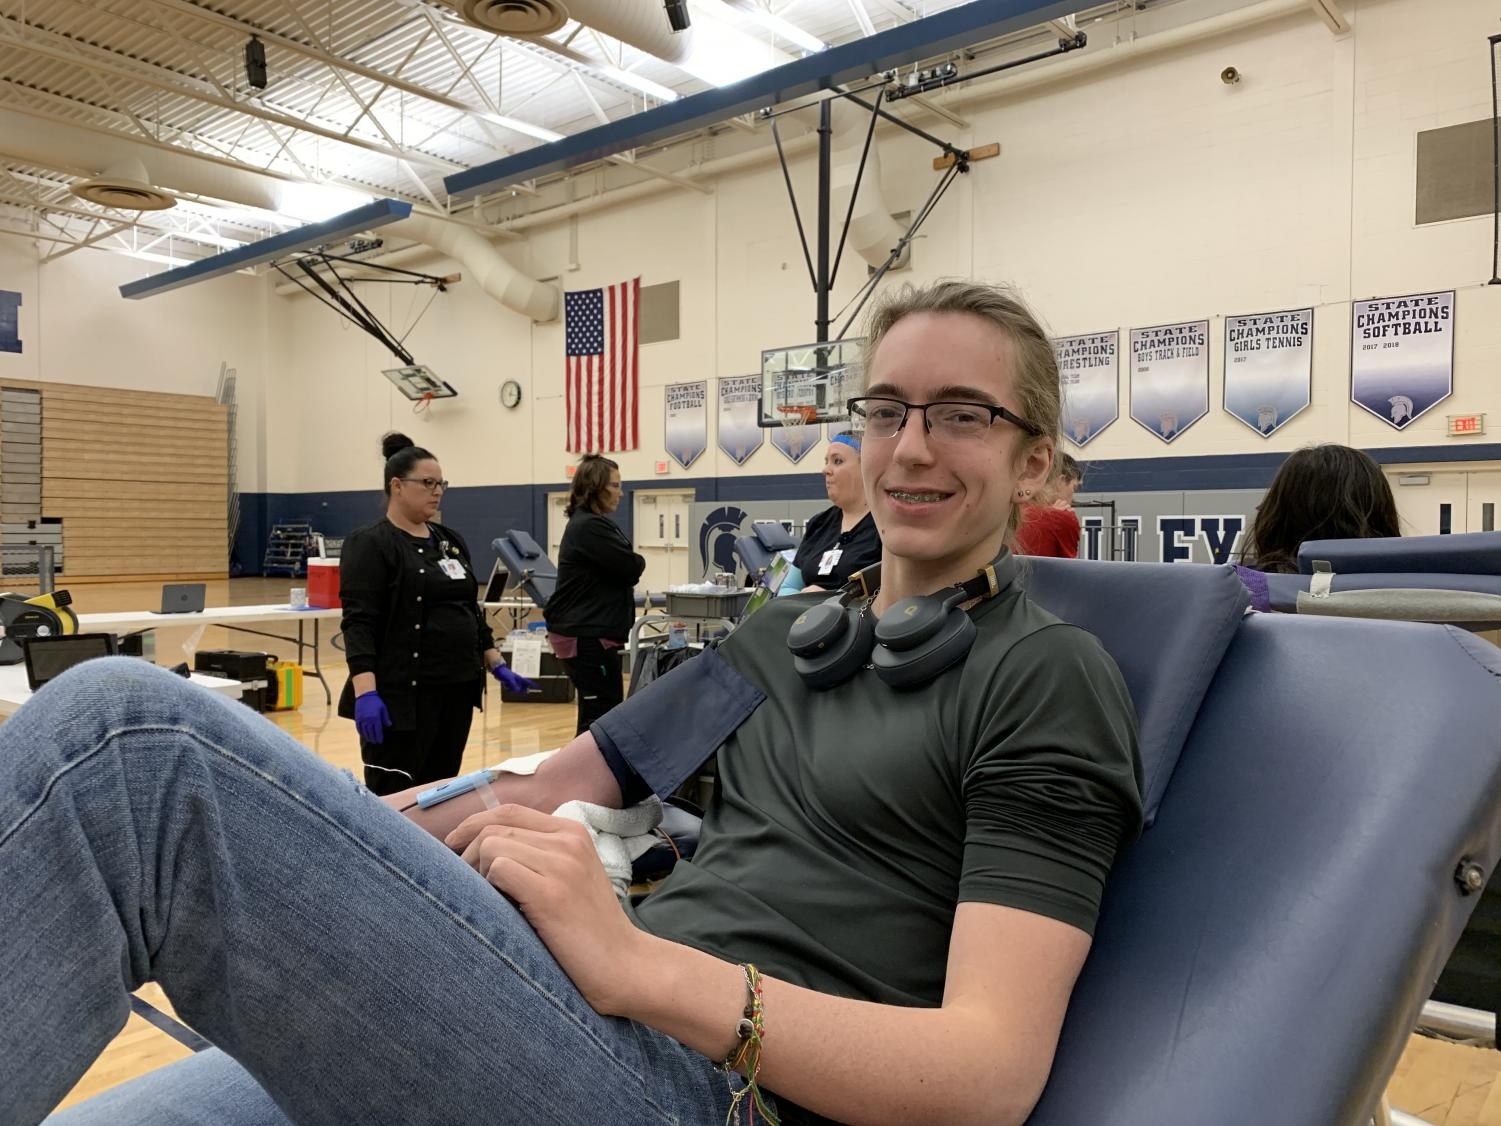 Junior Rohan Abernathy-Wee donates blood for the second time, with plans to continue in the future.